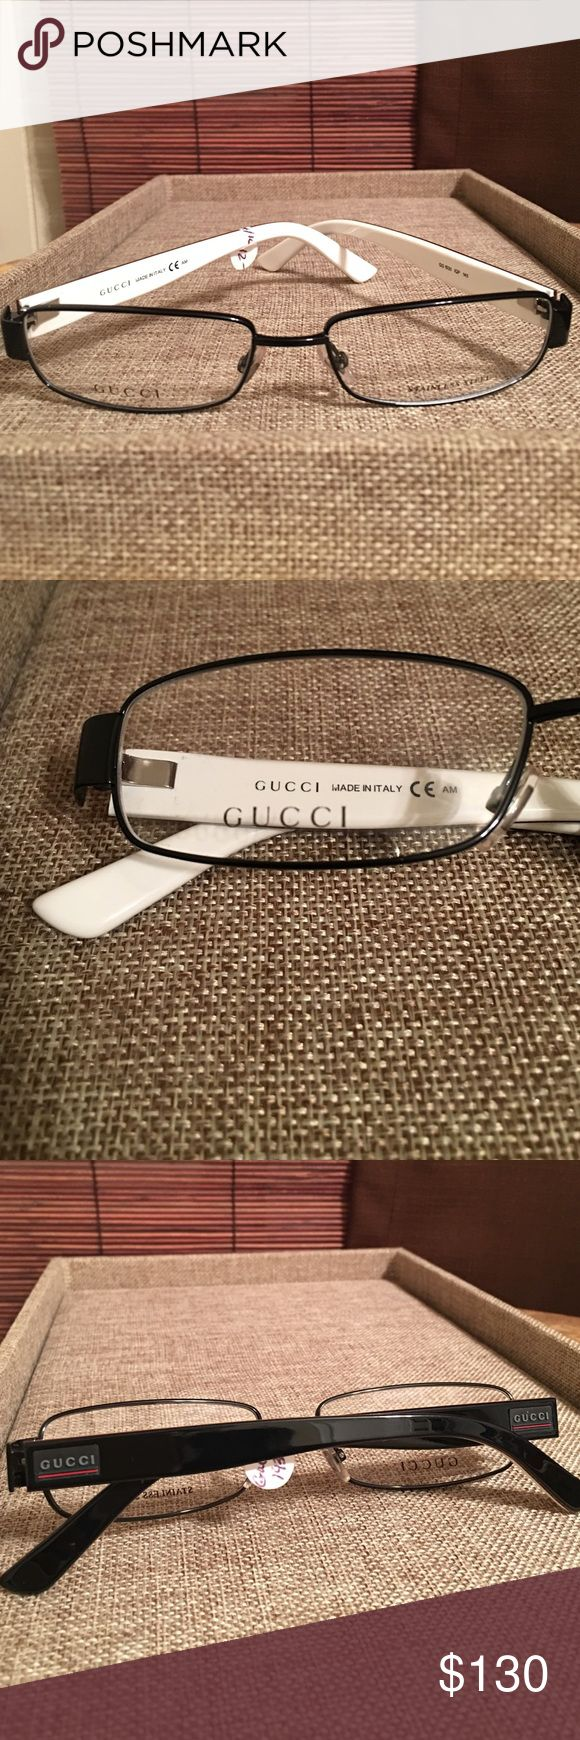 Gucci Designer Frame (Men) New men Gucci Designer Frame gorgeous Frame black with white inside lining with a touch of red on side logo,,, very bold one of my favorites. REDUCE LISTING FIRM!!!! Gucci Accessories Glasses